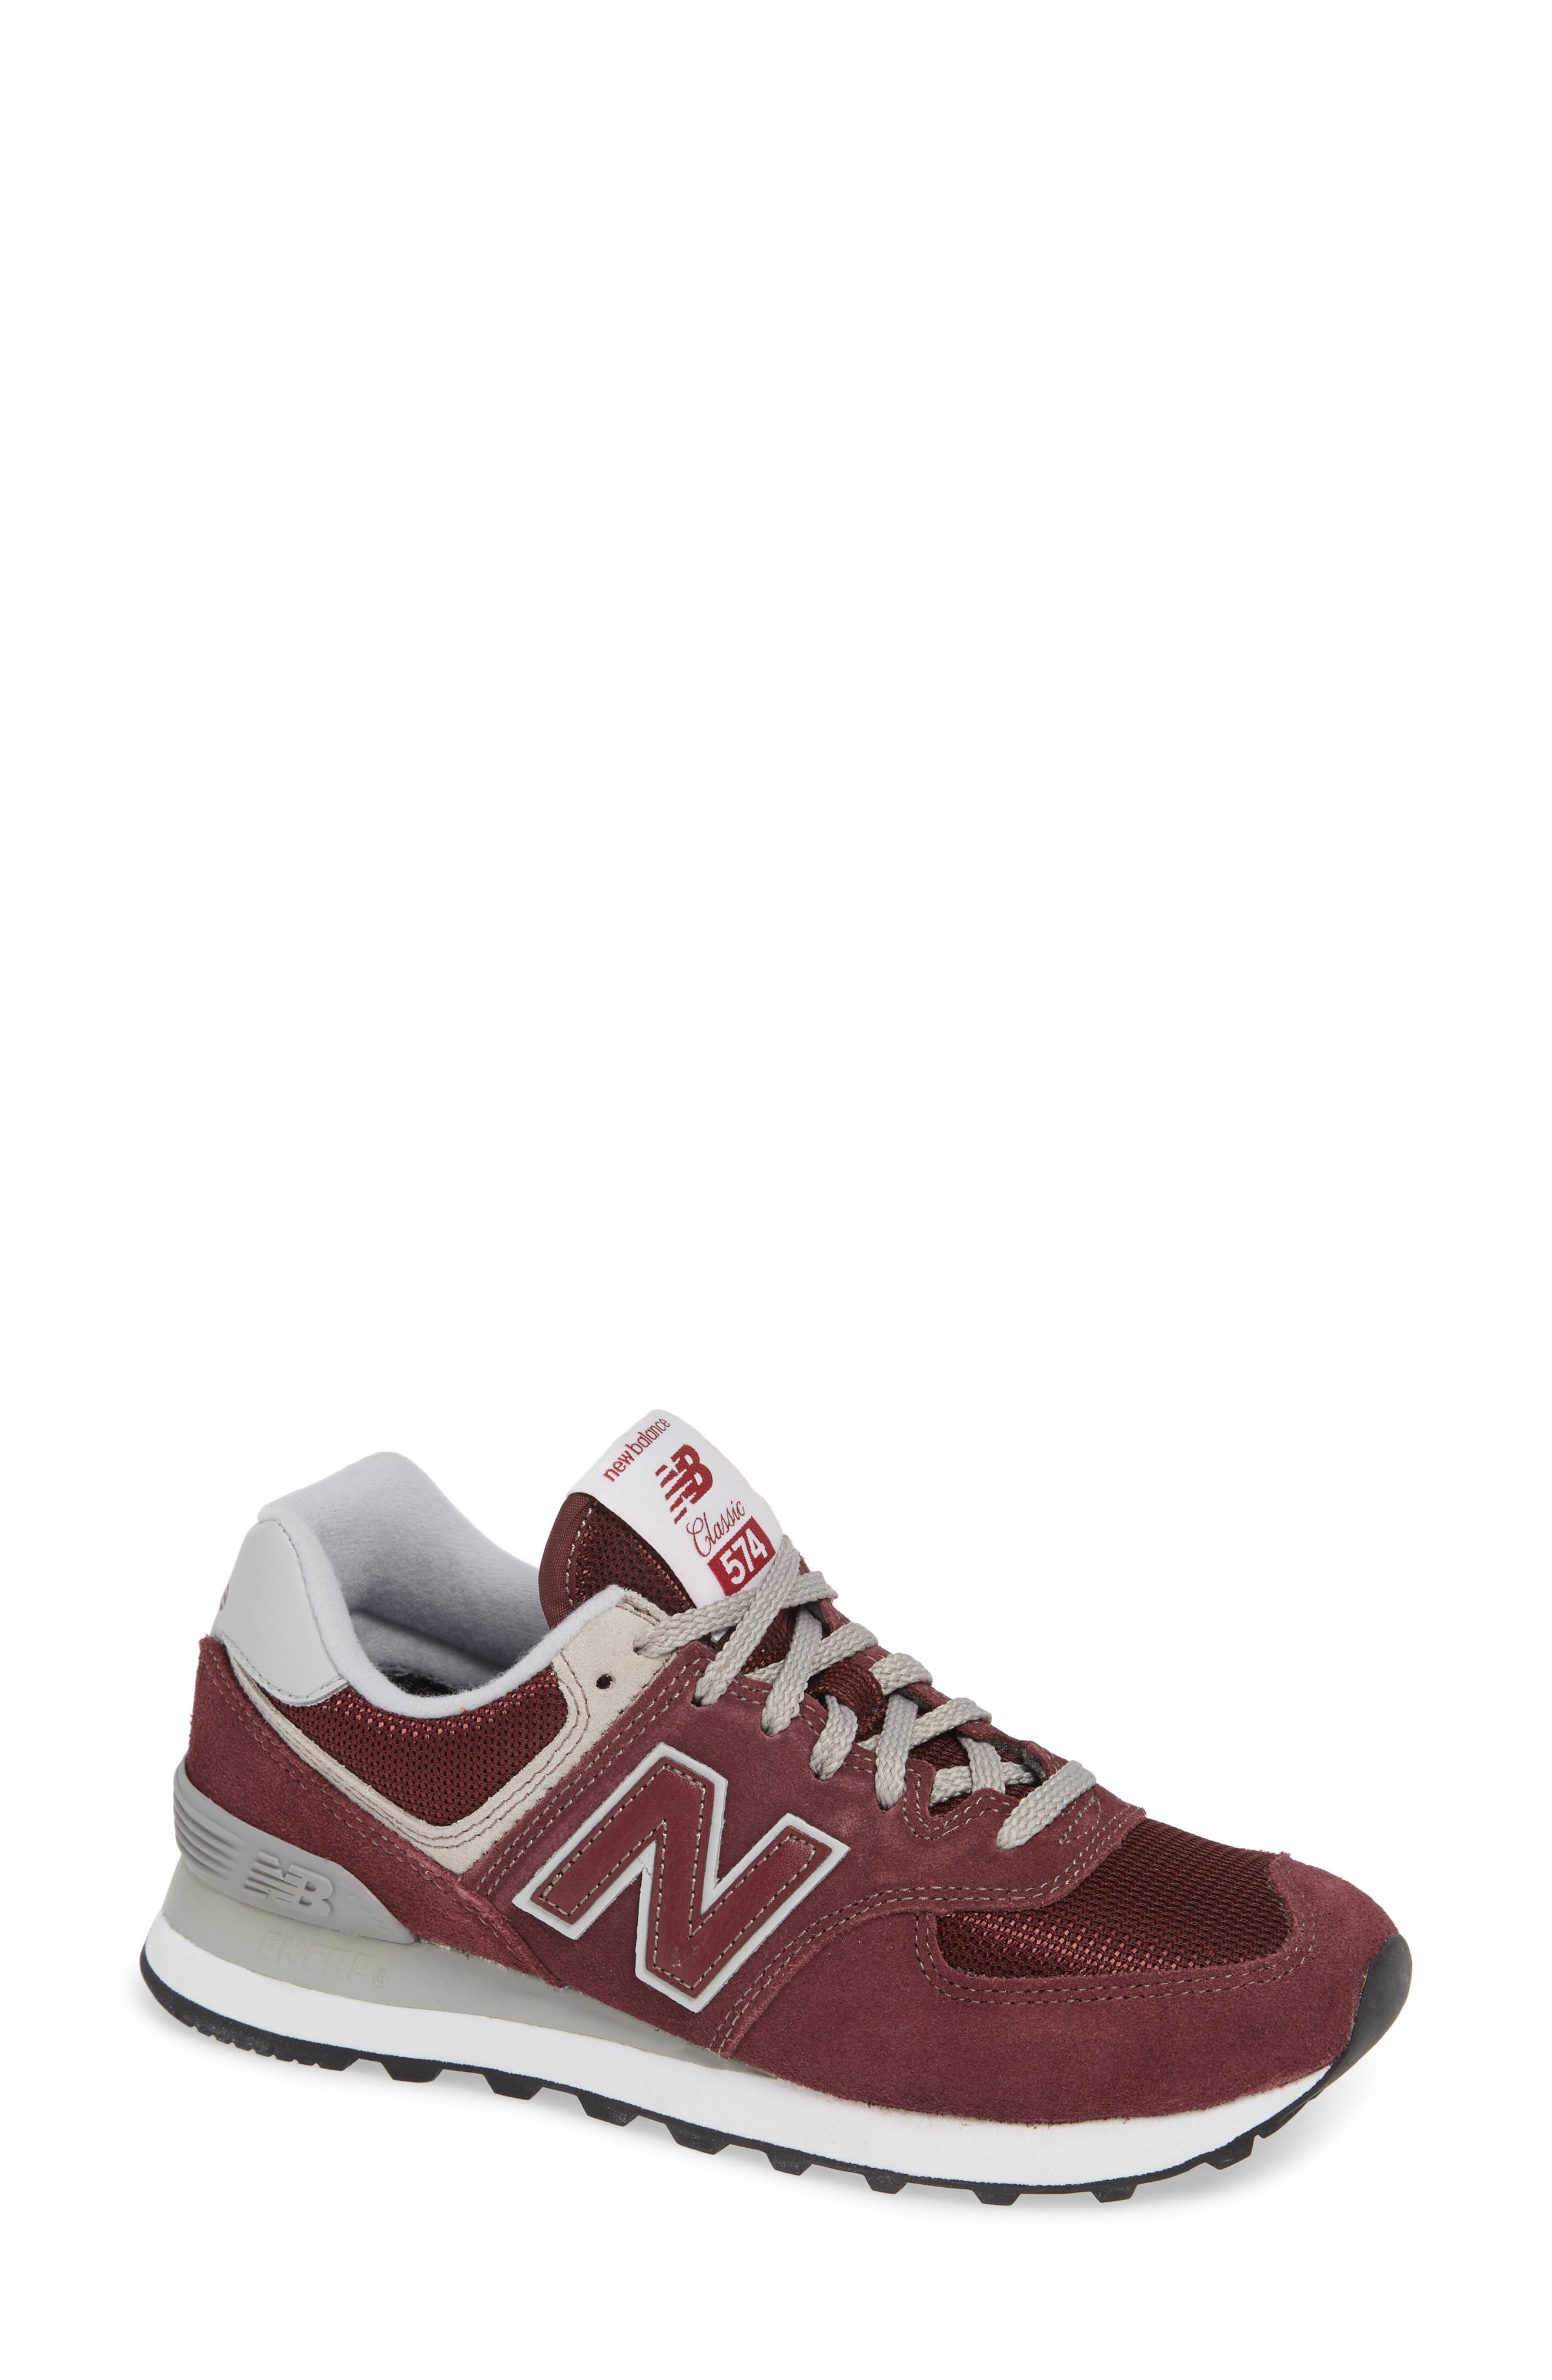 '574' Sneaker,                         Main,                         color, BURGUNDY